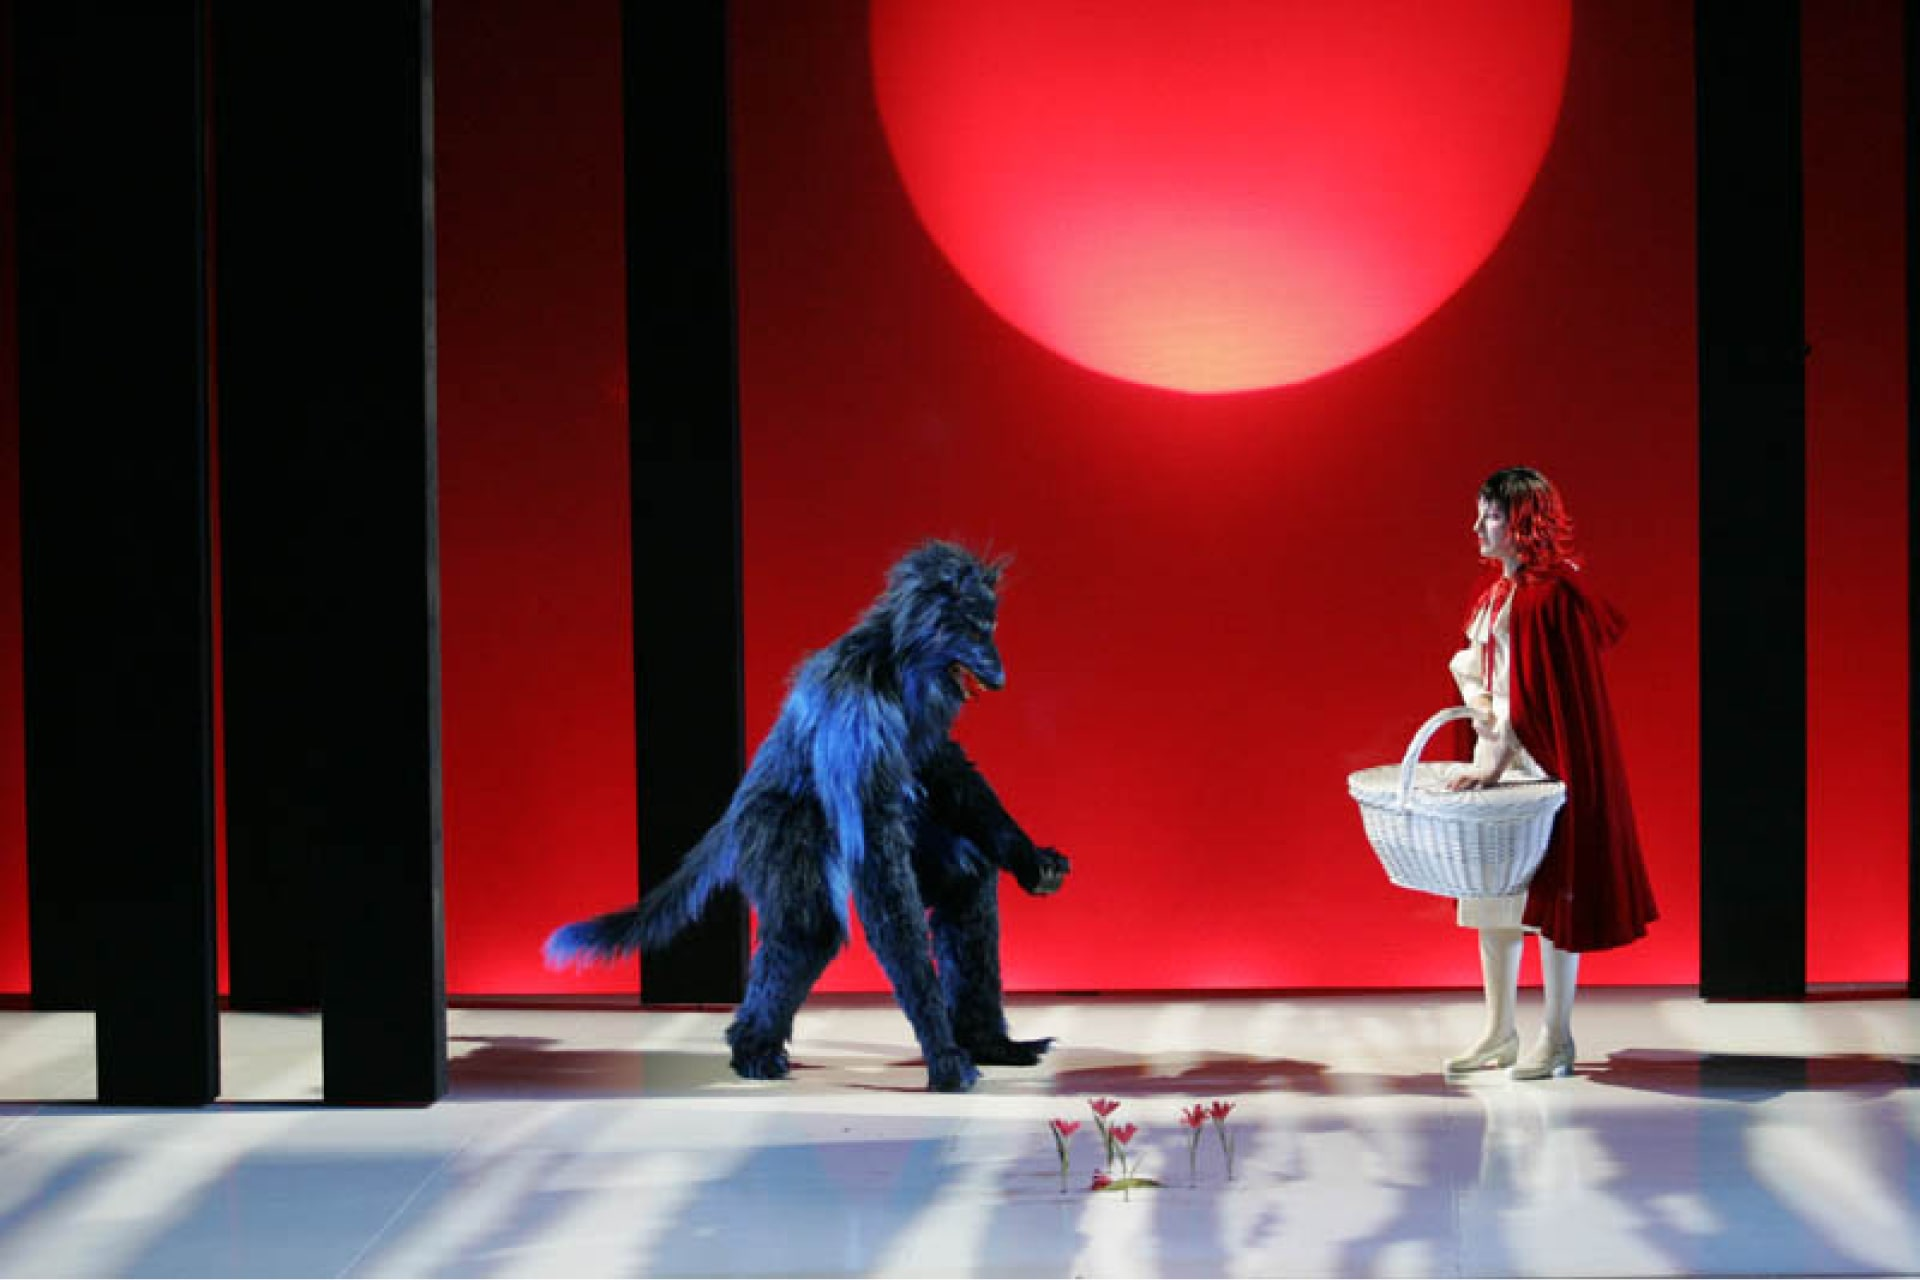 Blue-haired wolf confronts girl in red cloak carrying white wicker basket, on white stage in front of red sky and sun.